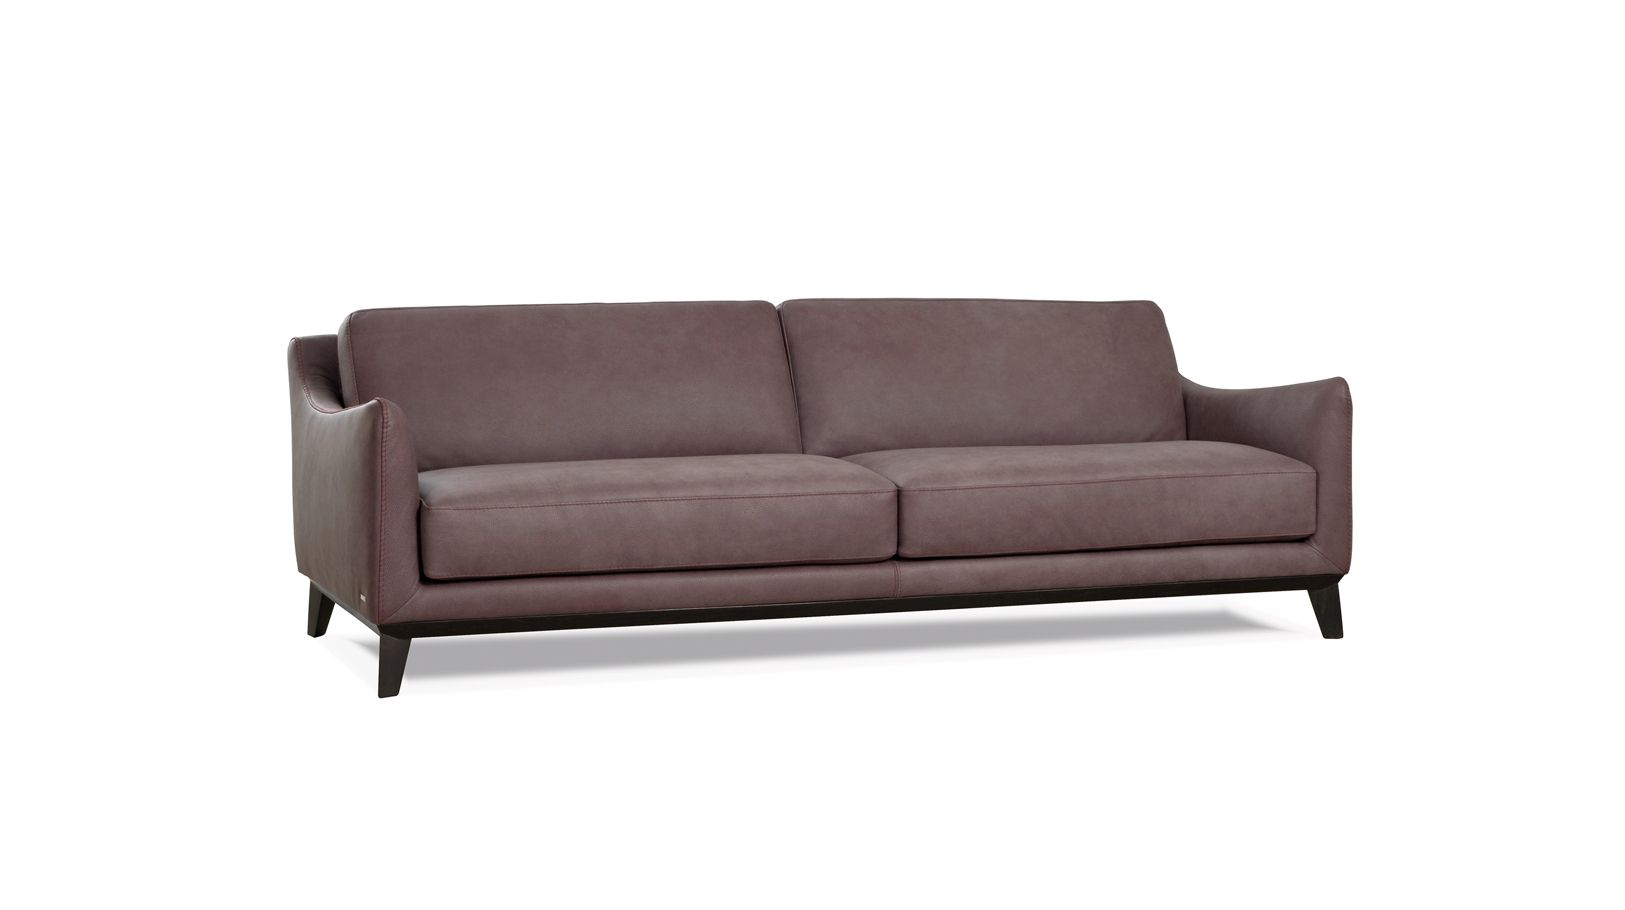 outdoor sofa brisbane hereo sofa